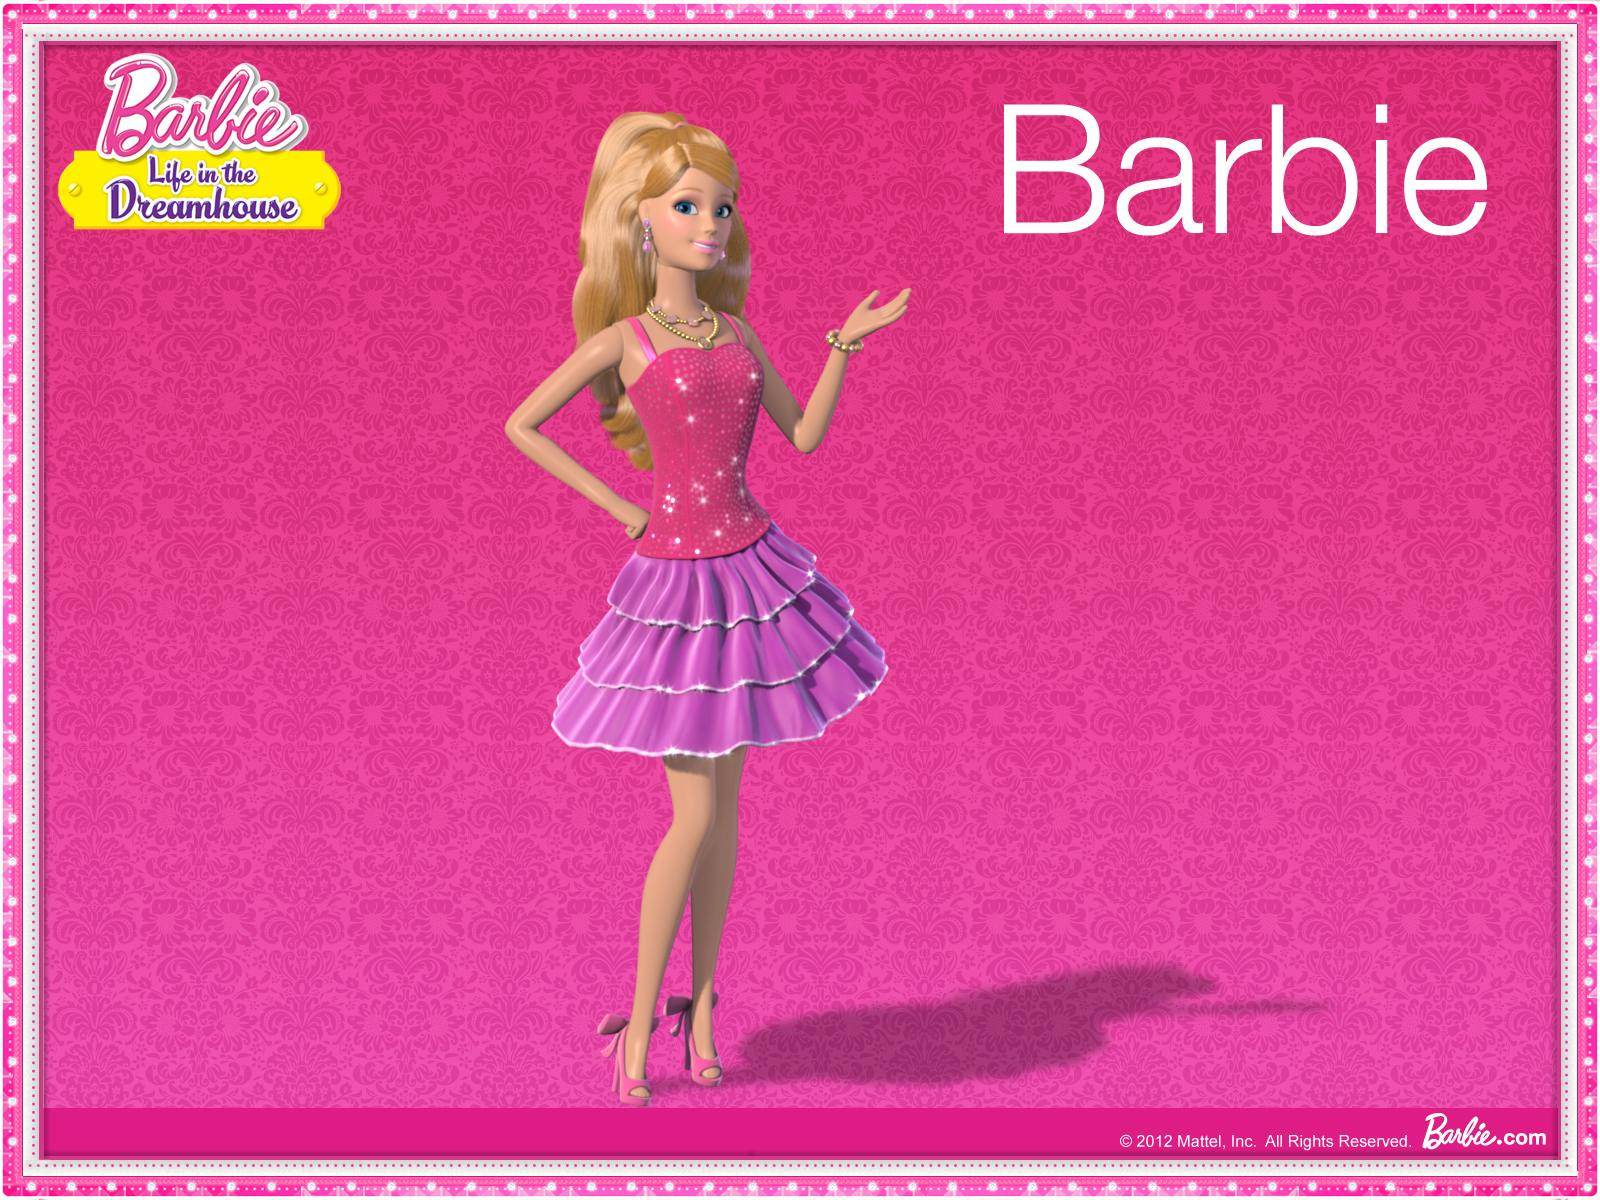 barbie life in the dreamhouse deutsch